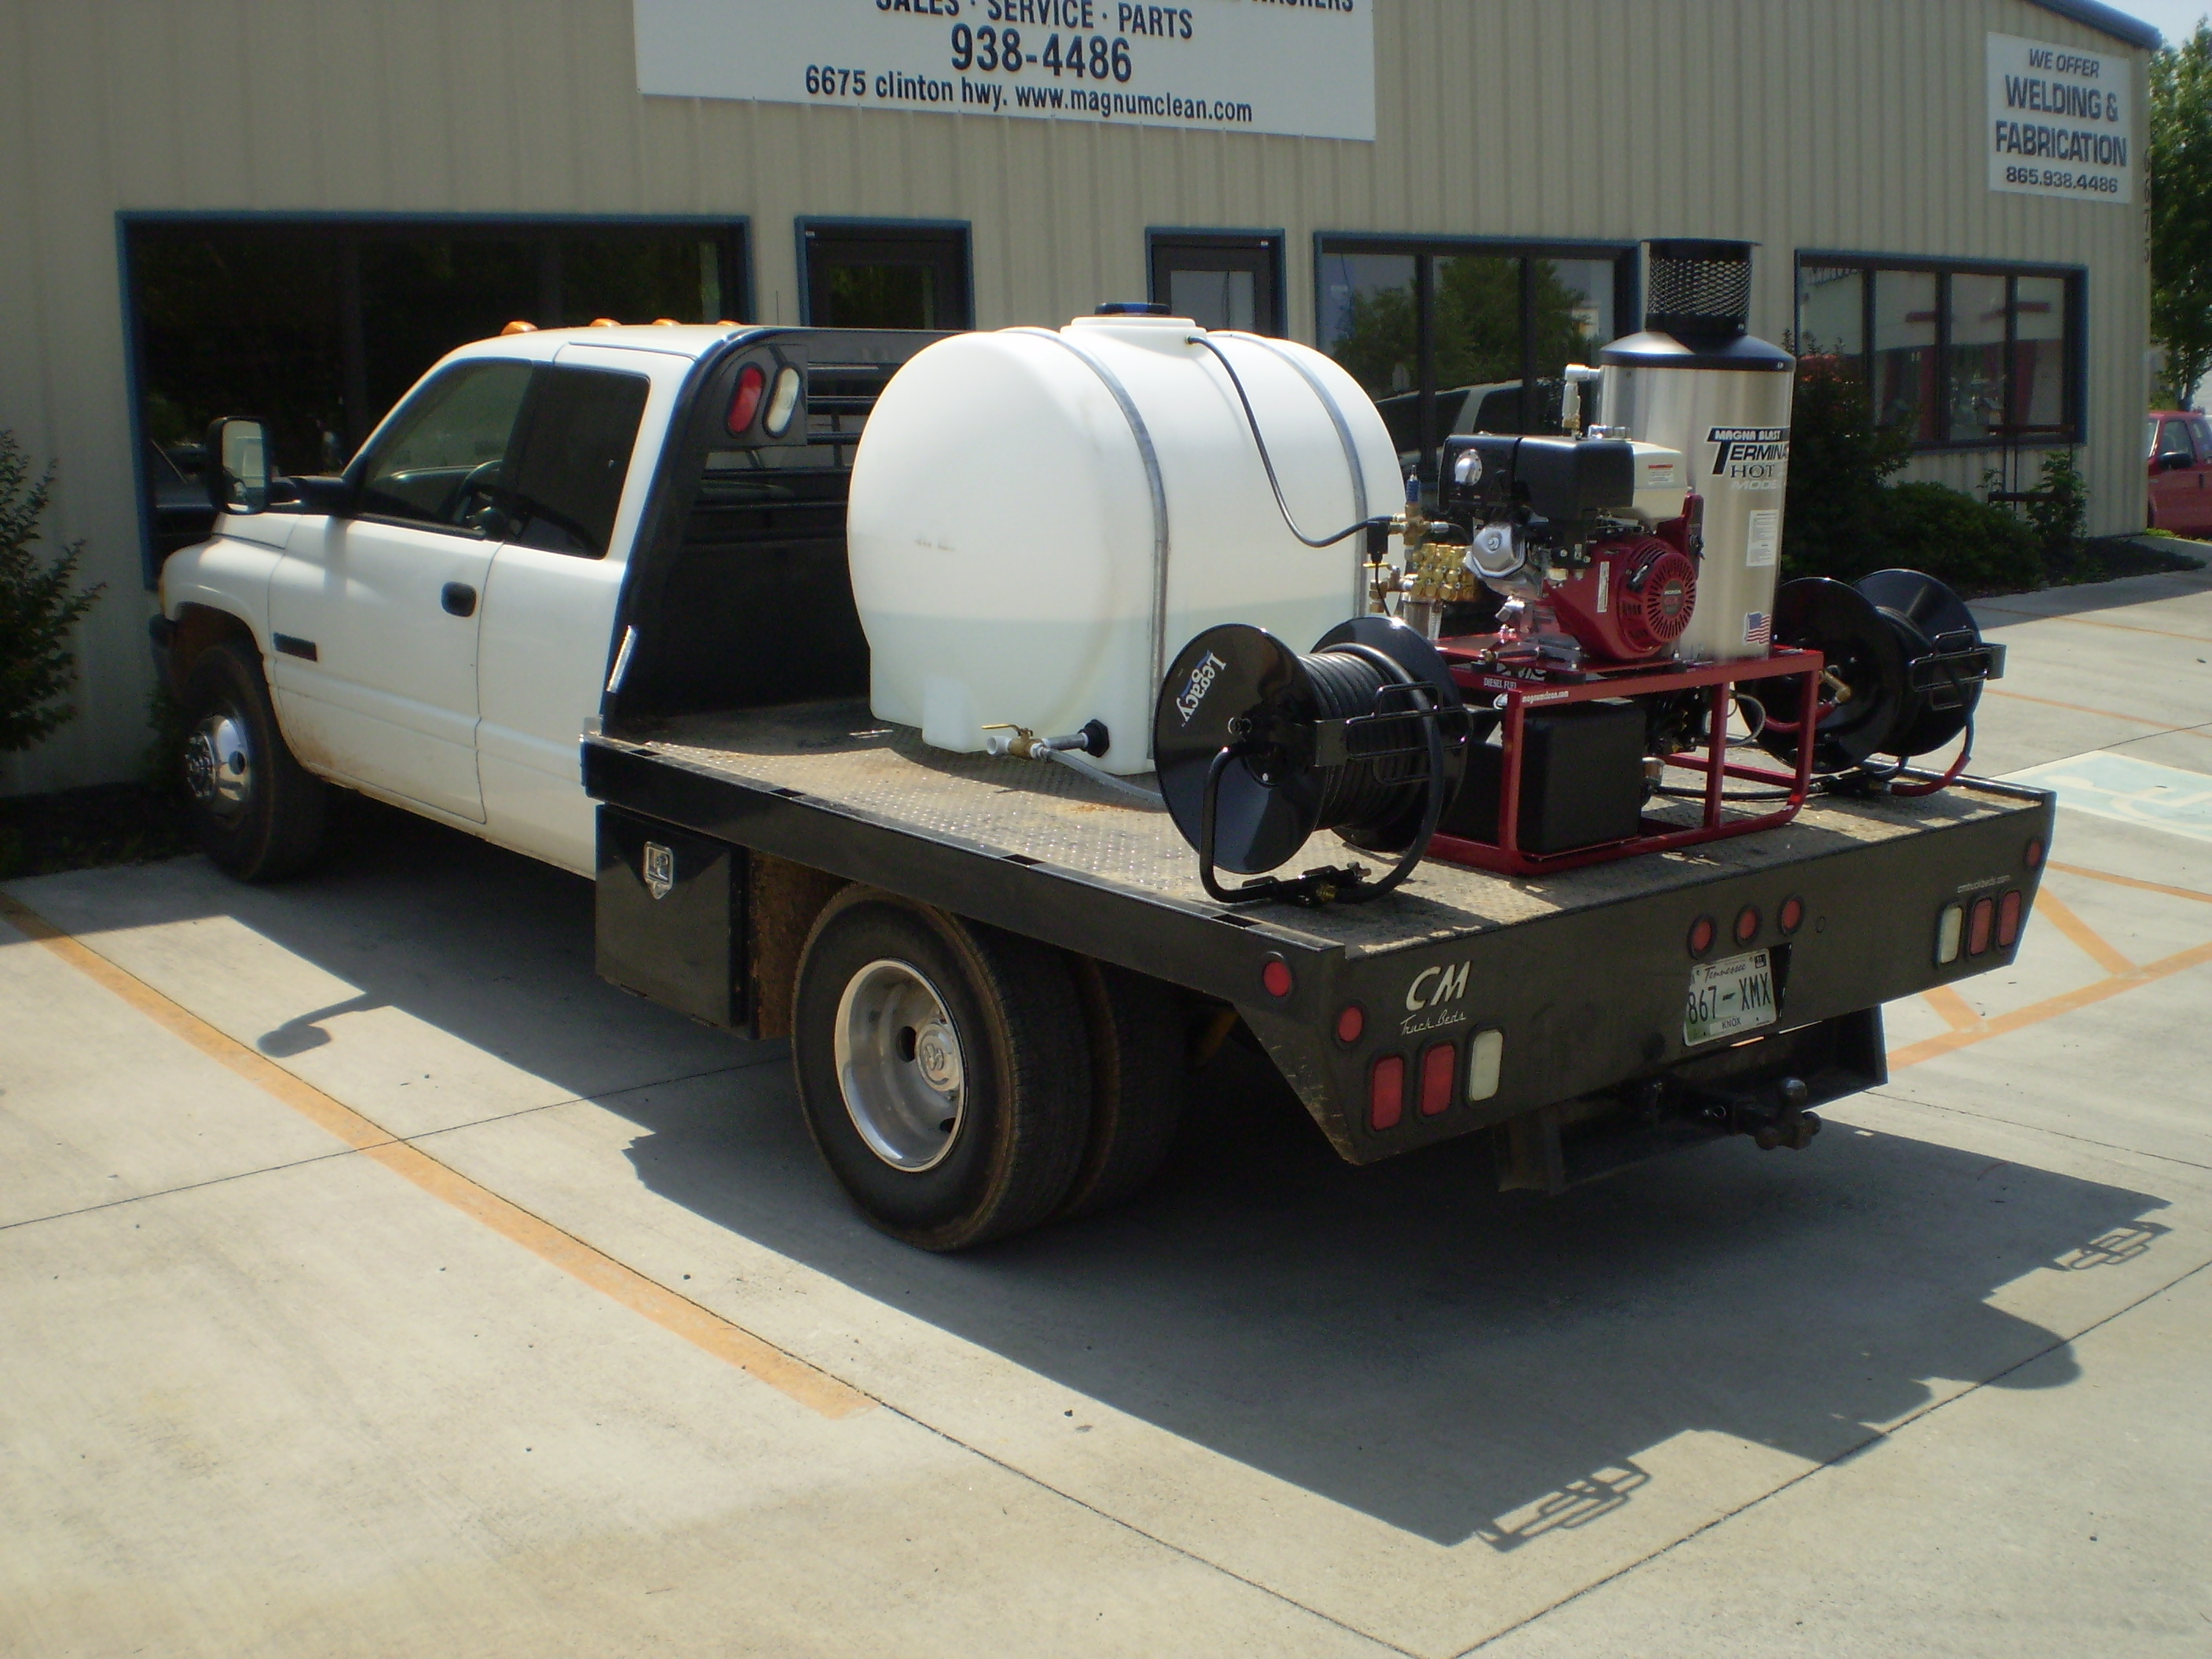 Truck Bed Mounted Pressure Washer